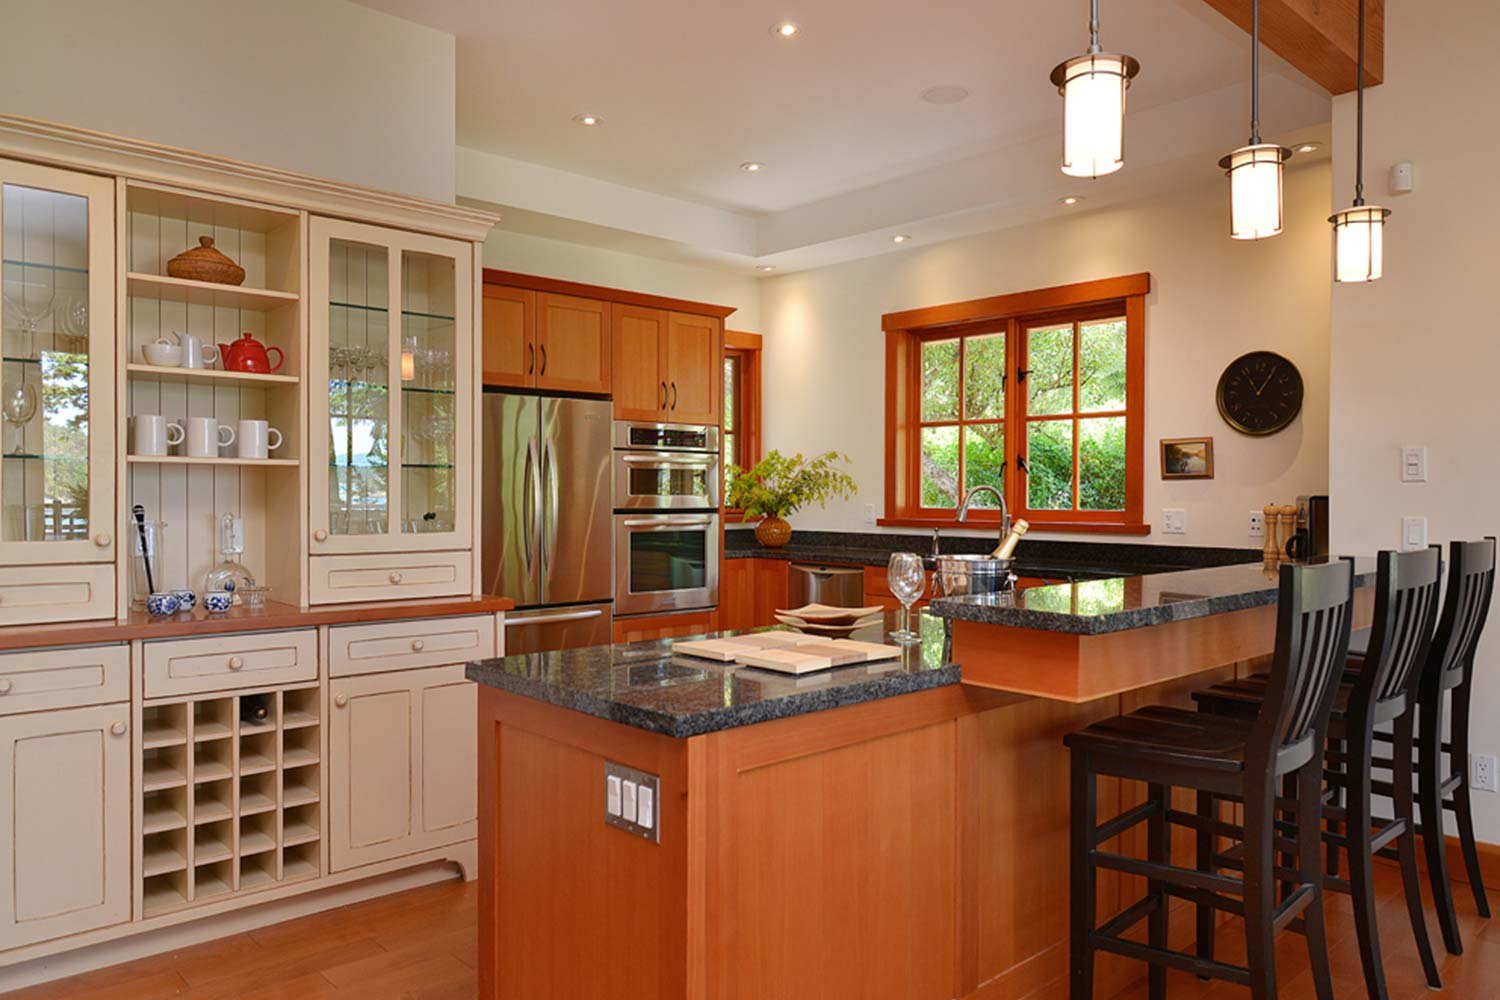 The kitchen of John Henry's luxury holiday home is fully furnished and features a fridge, oven, breakfast bar, and wine rack.